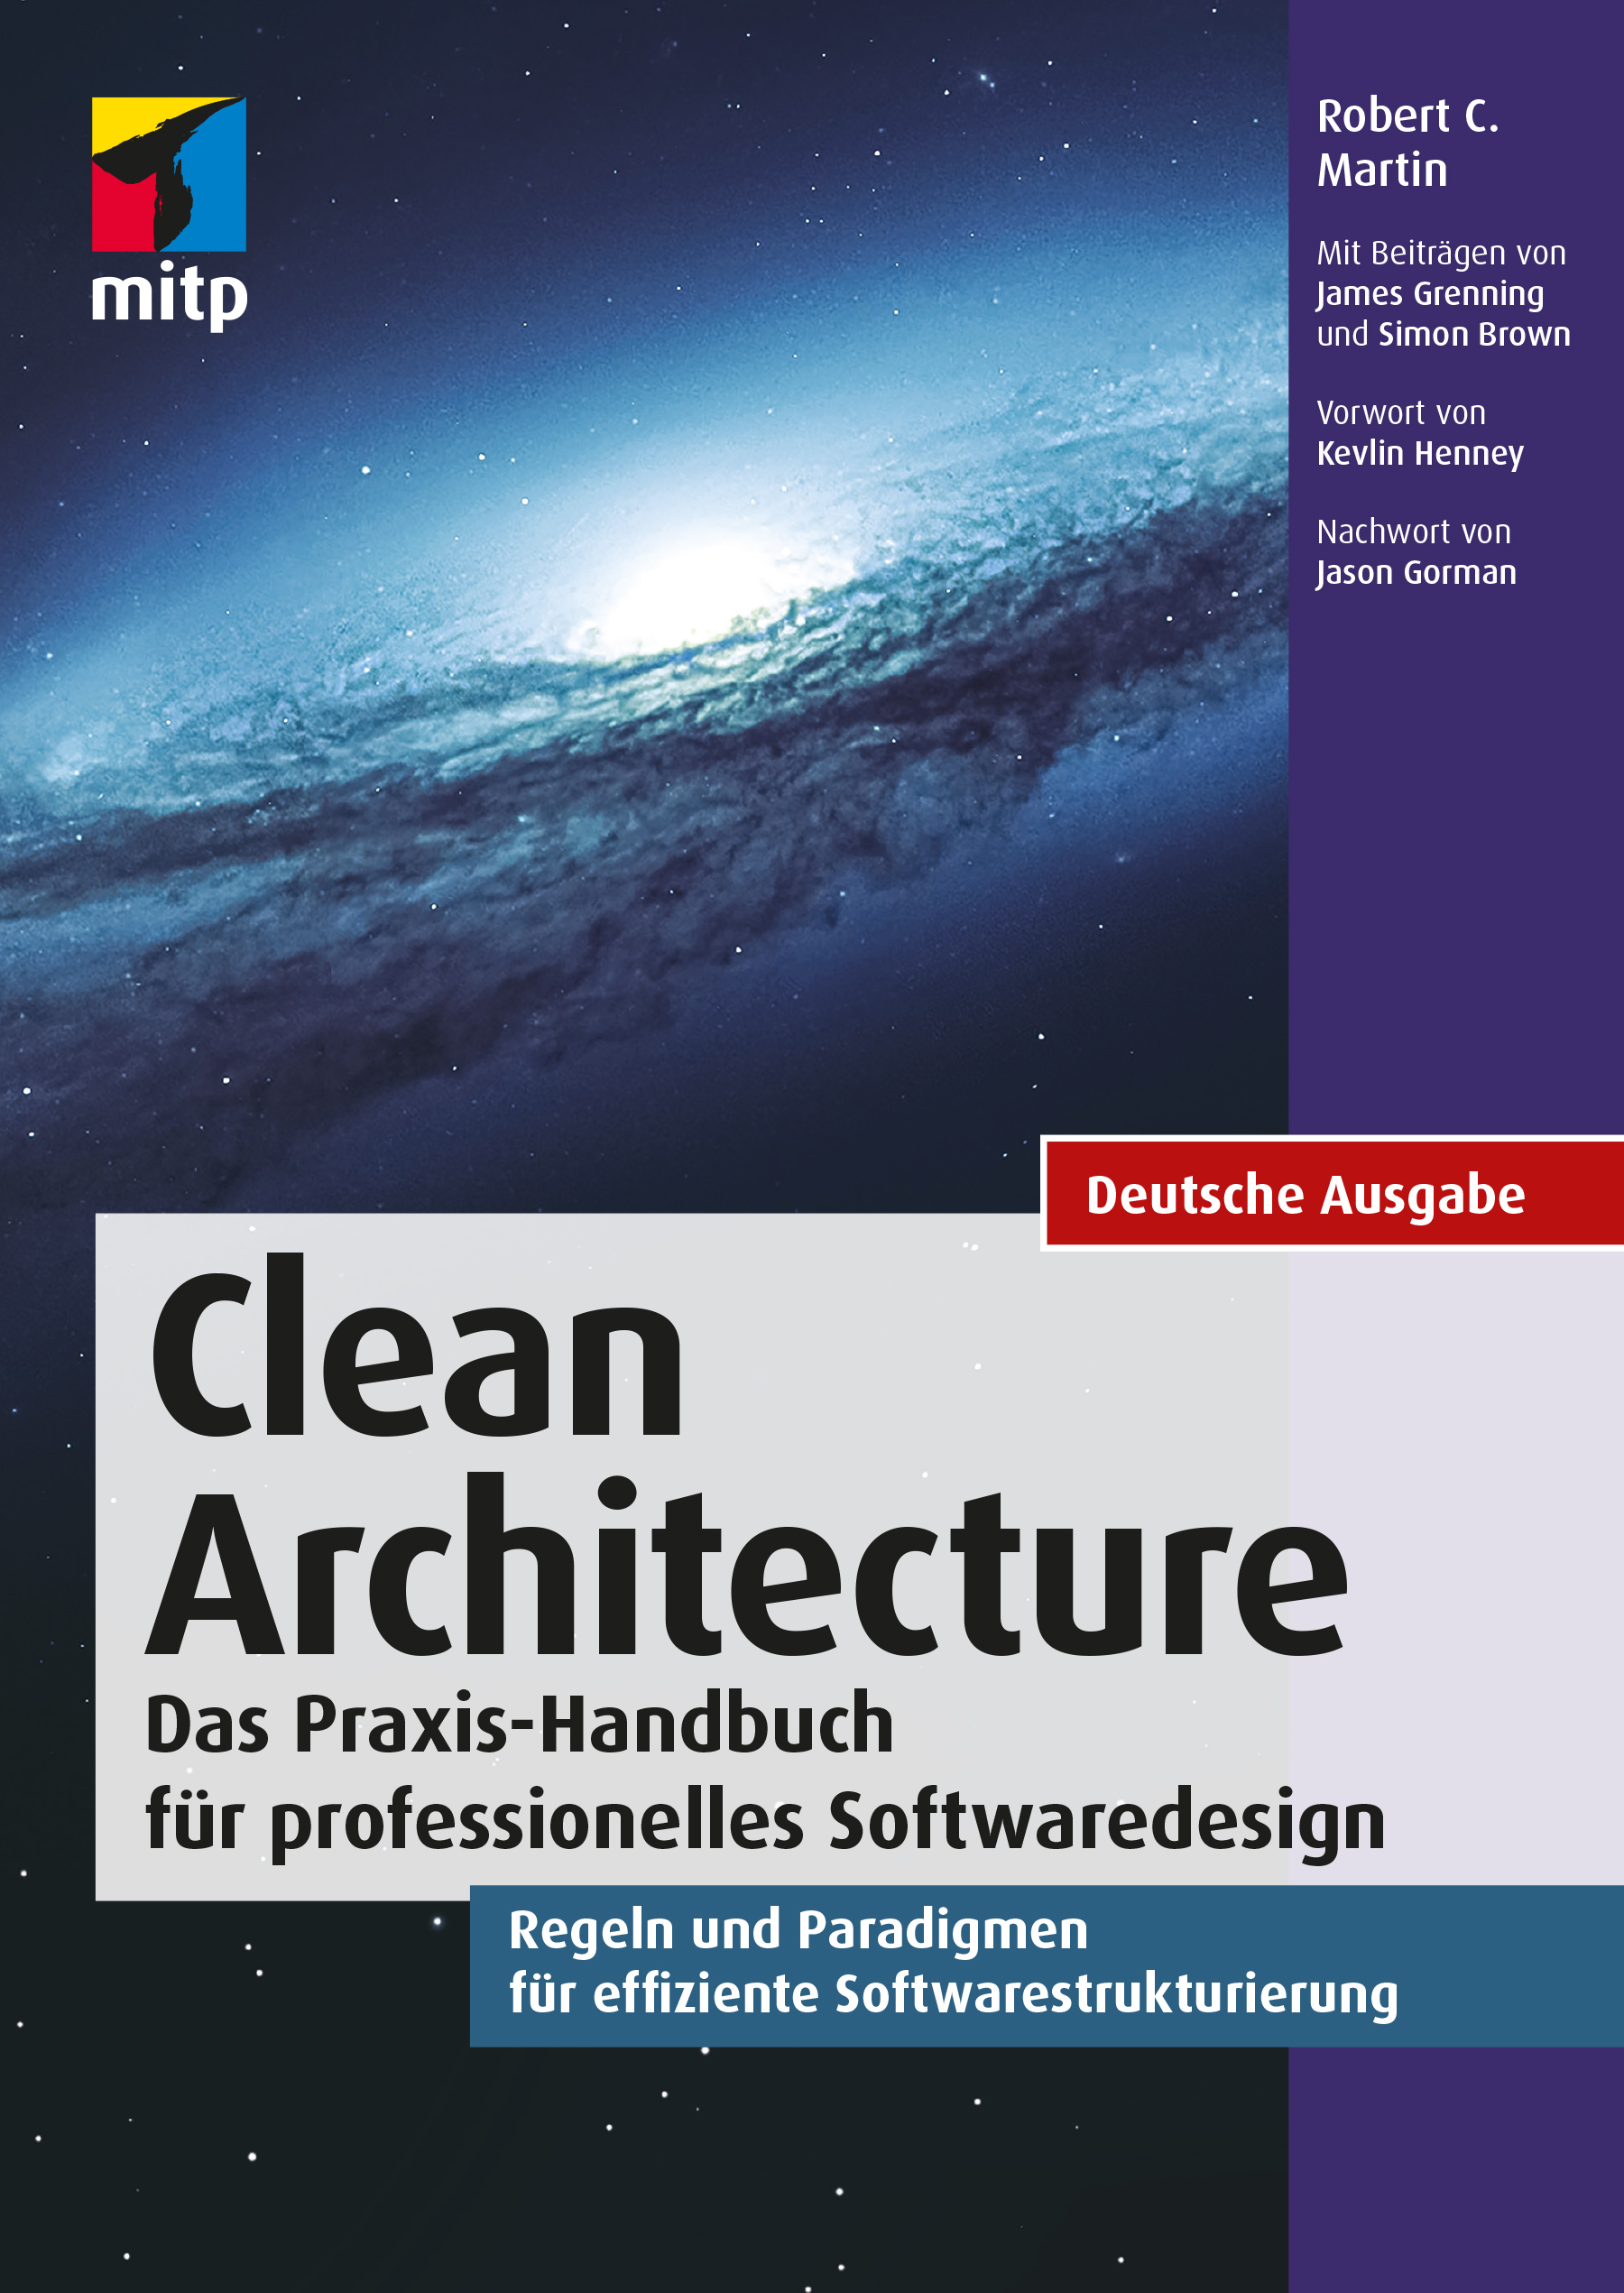 download clean architecture from robert c martin pdf